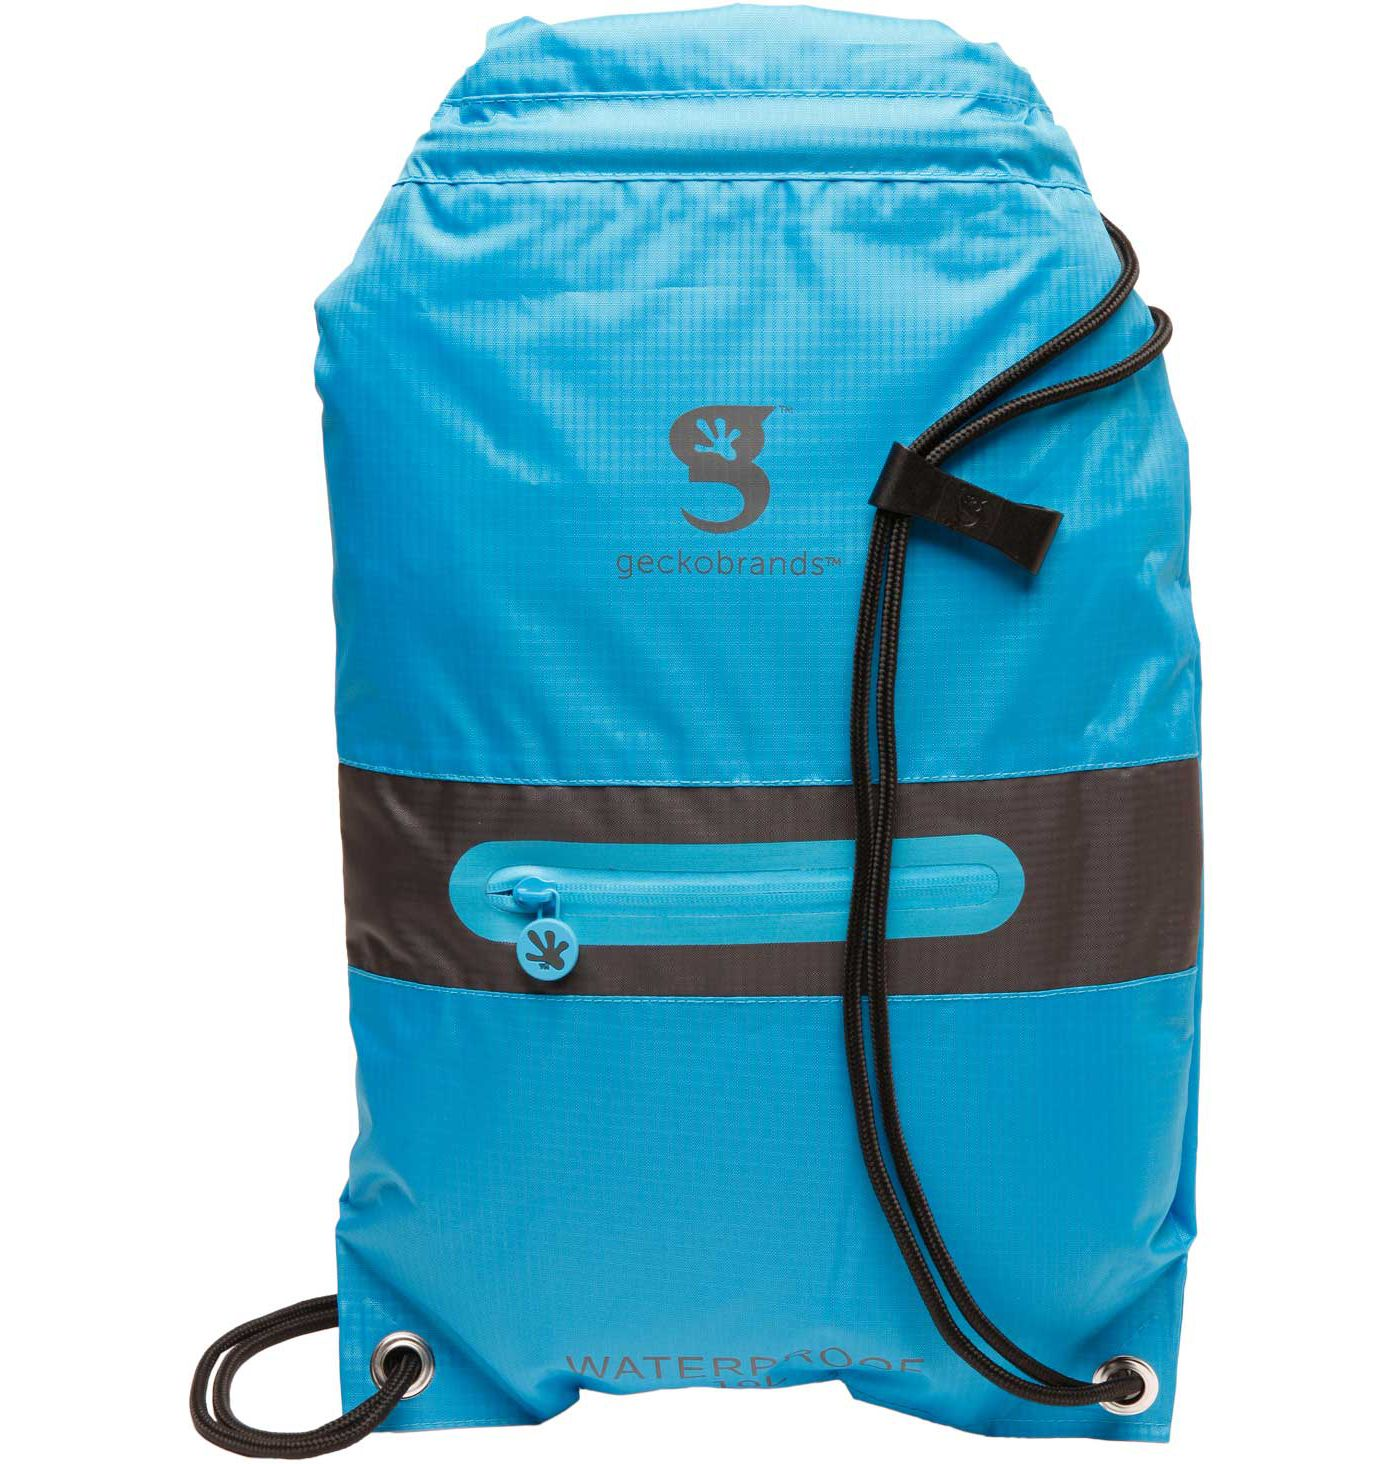 geckobrands Waterproof Drawstring 2.0 Backpack